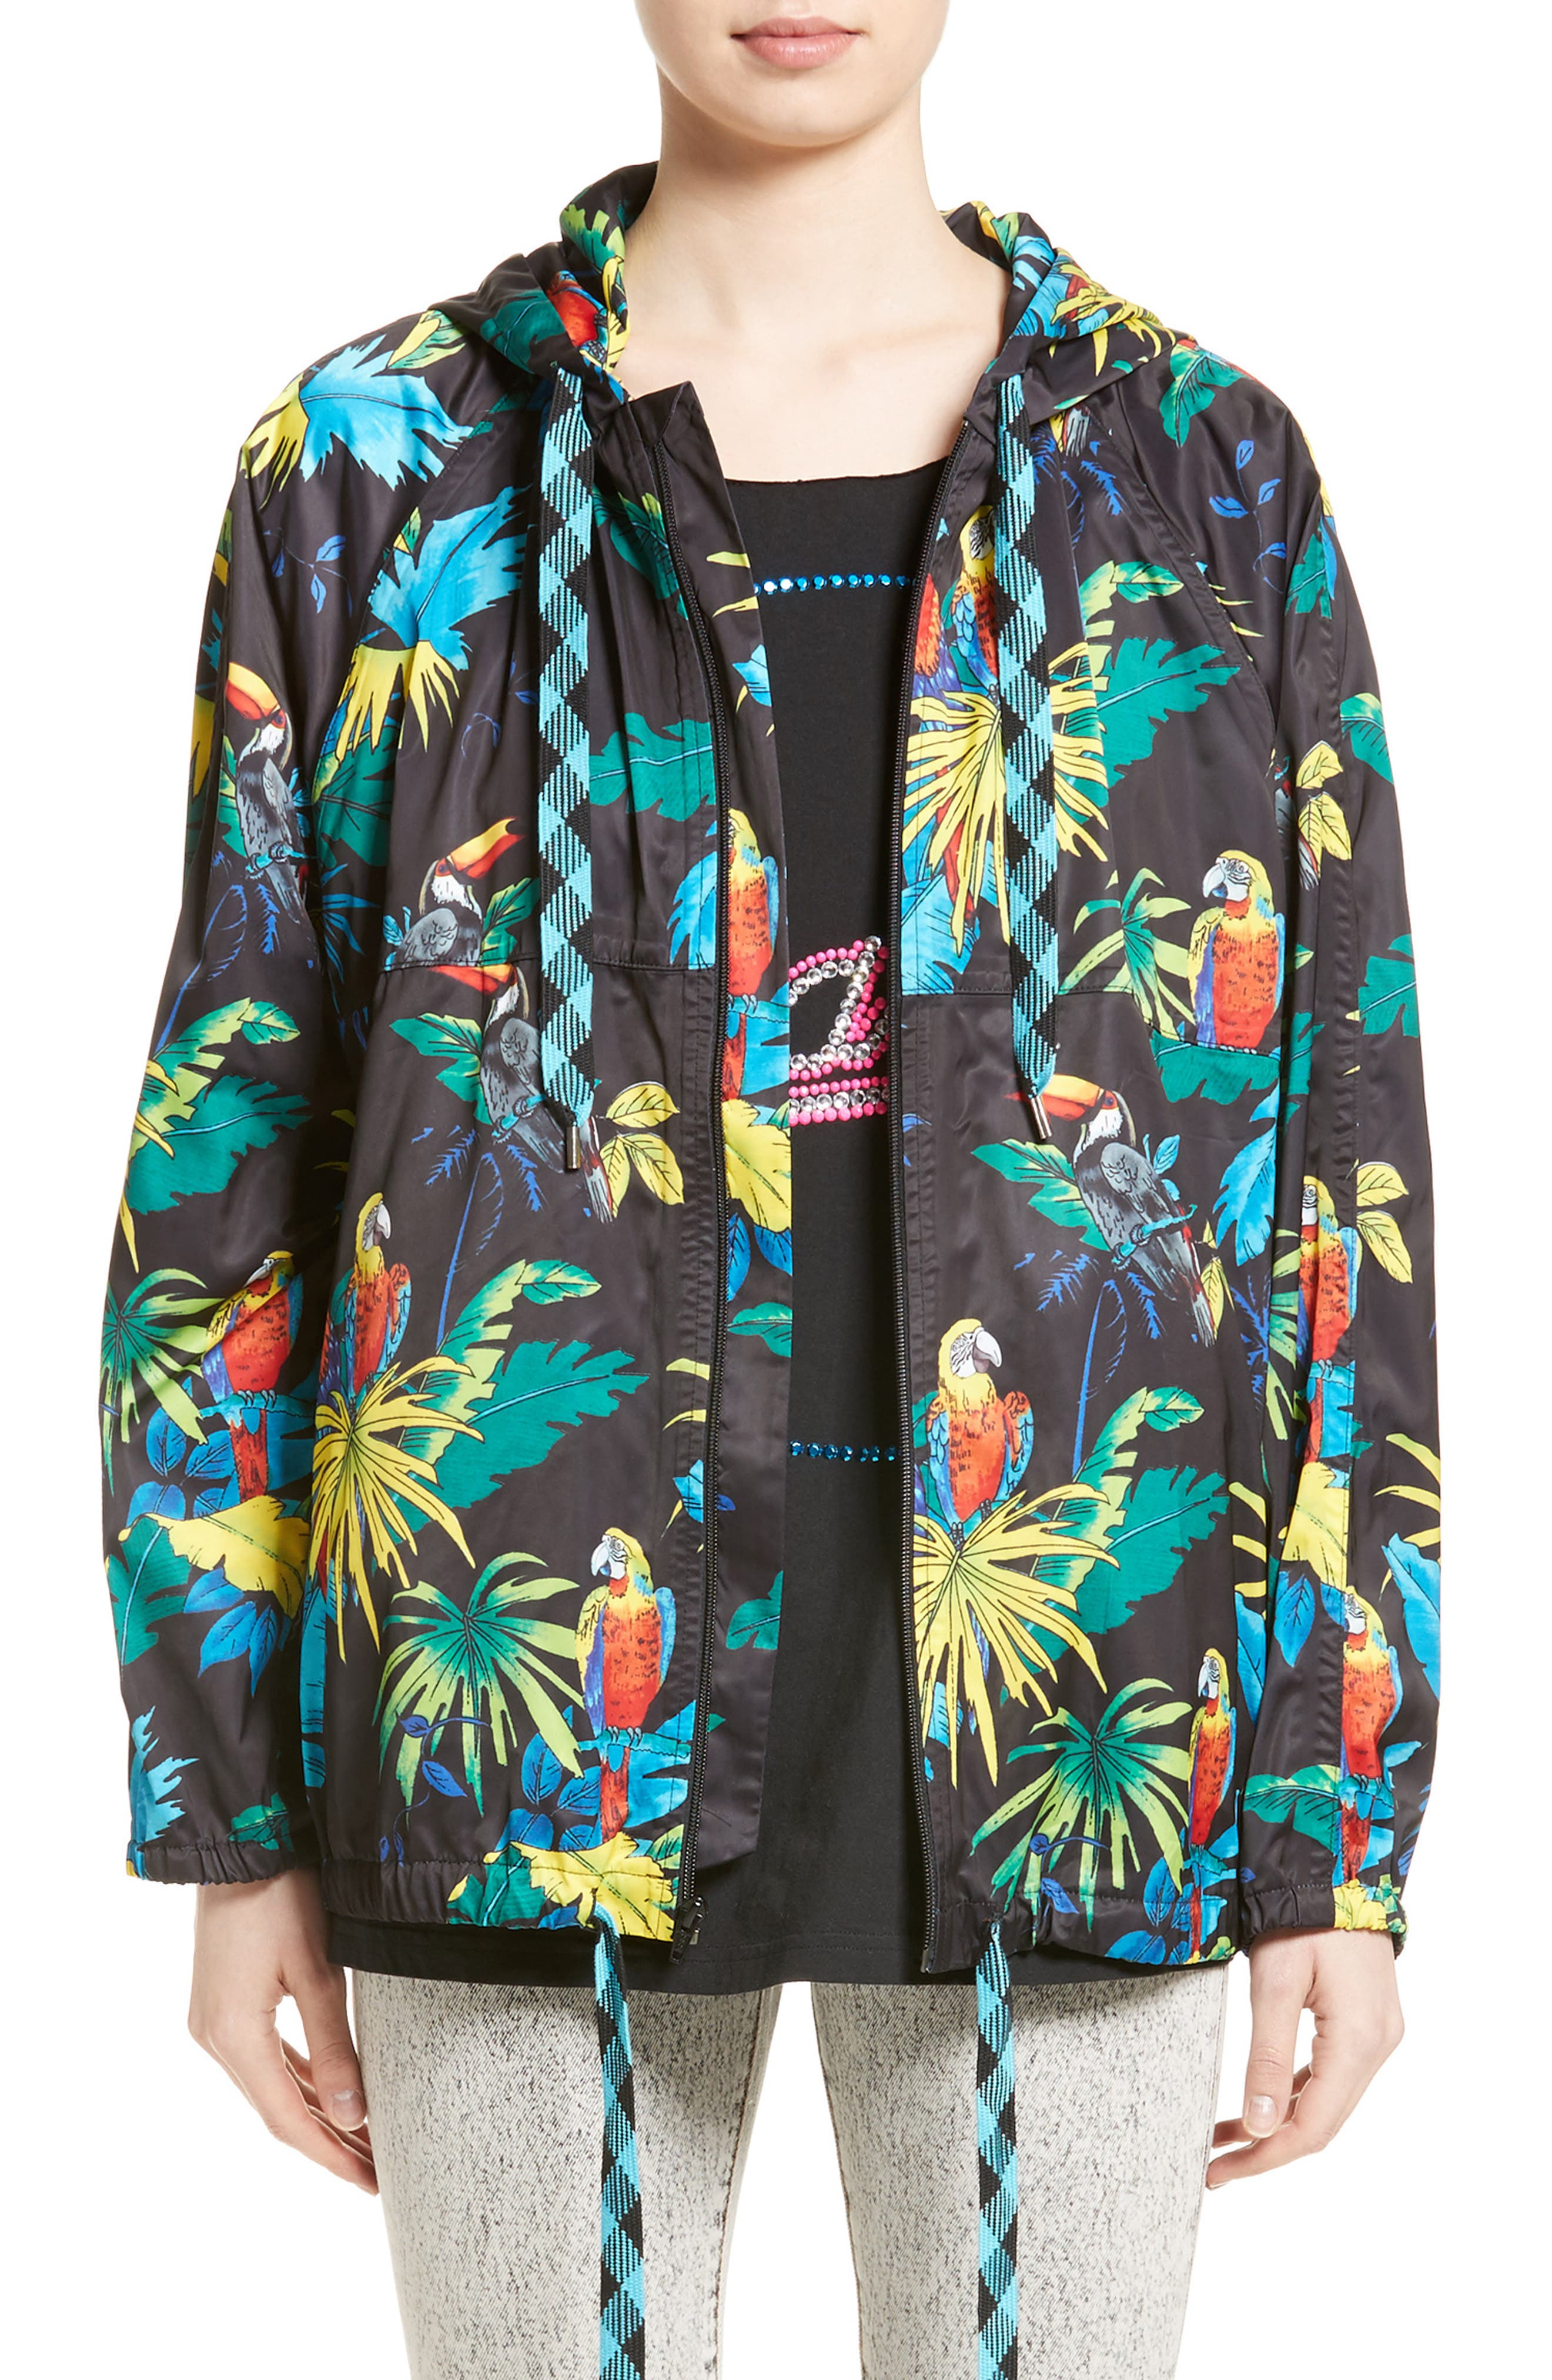 MARC JACOBS Parrot Print Hooded Jacket